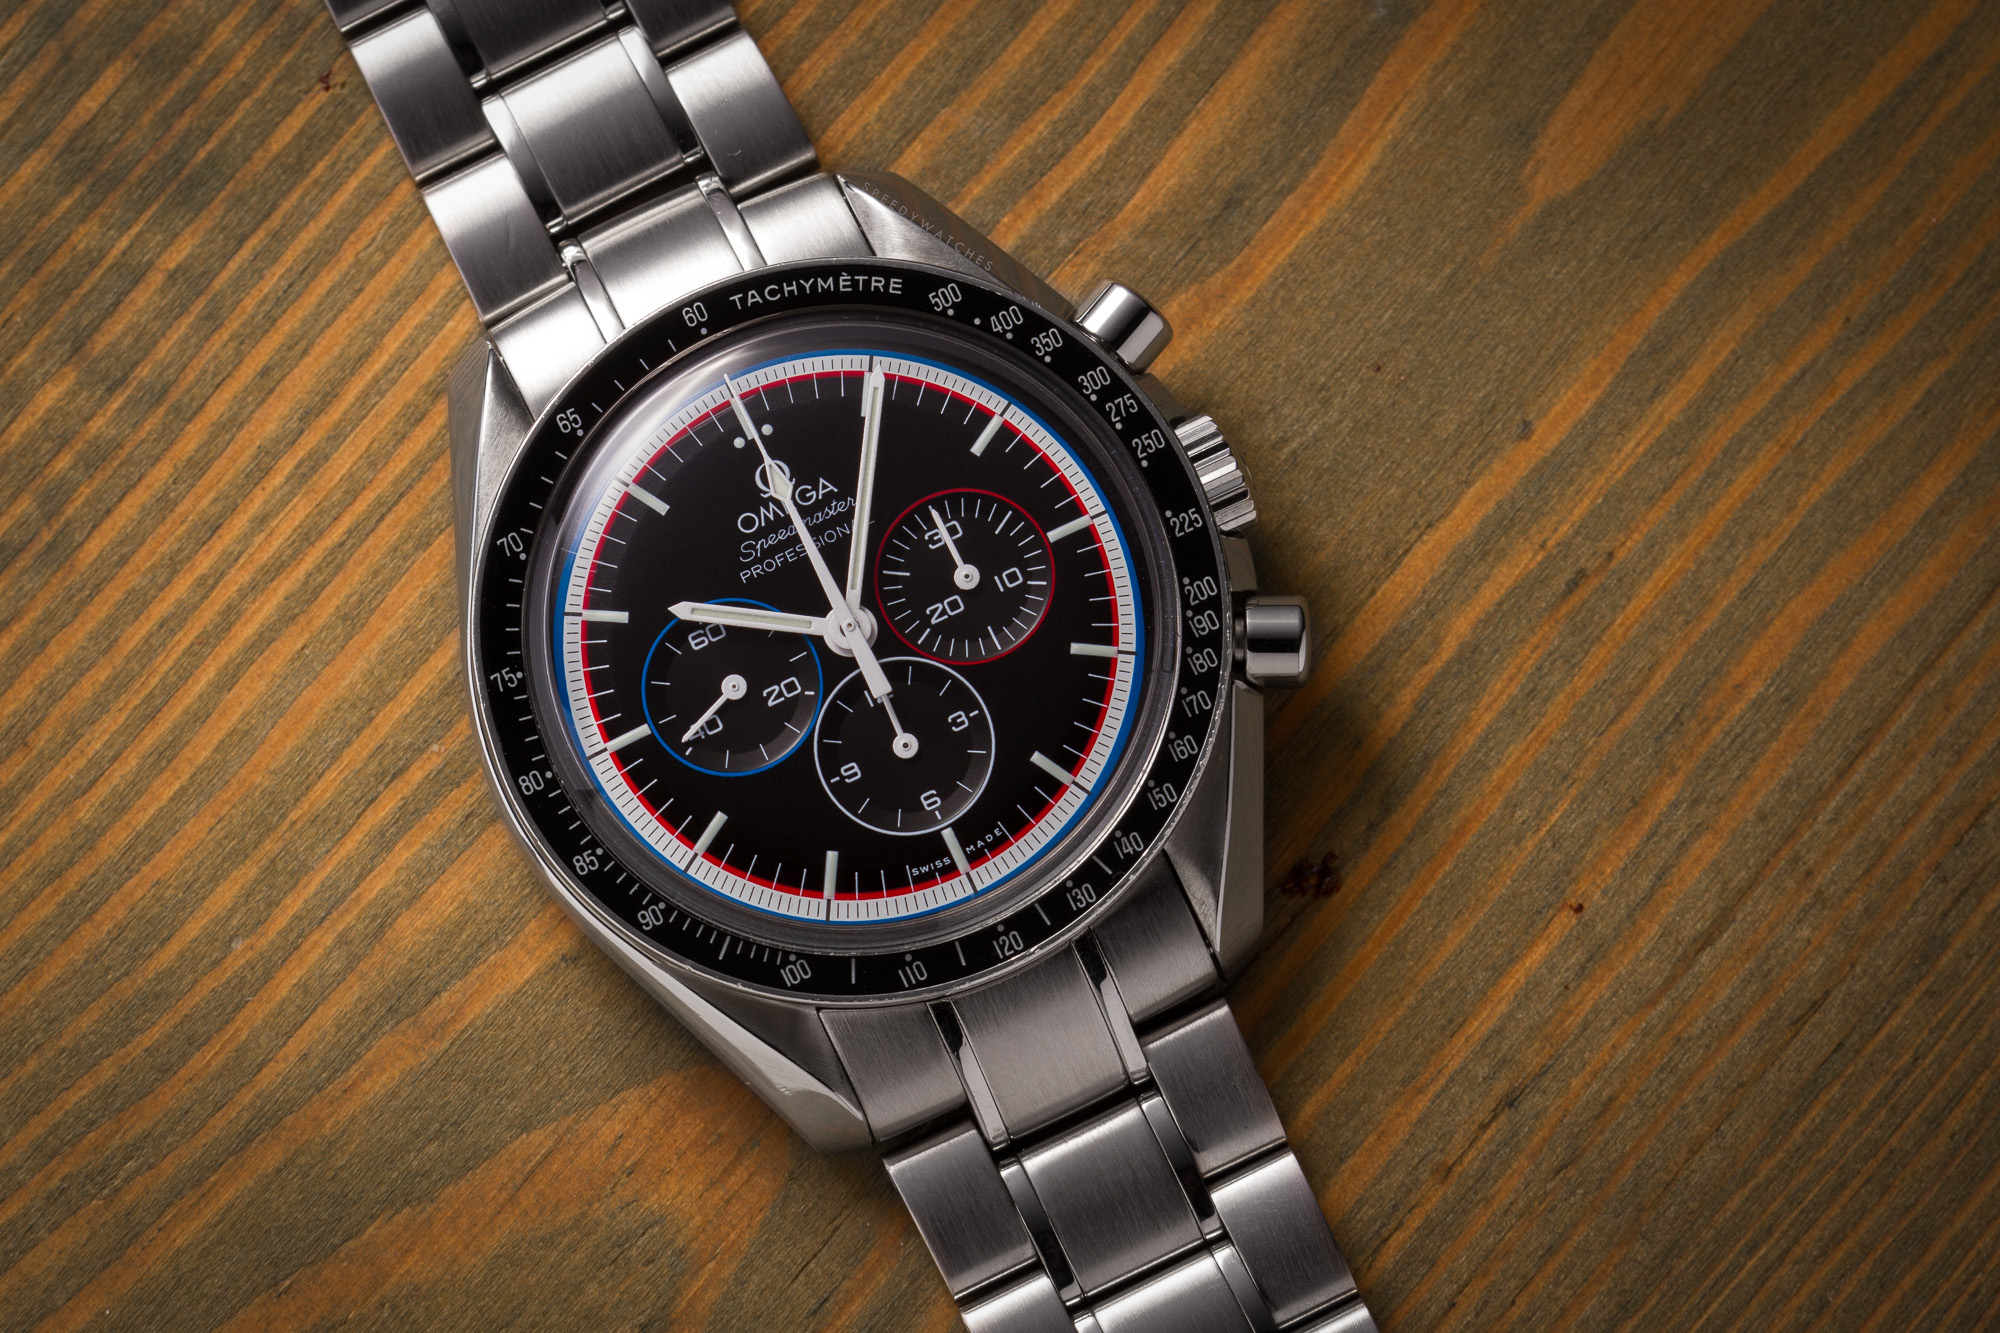 Omega Speedmaster Professional Apollo 15 40th Anniversary 311.30.42.30.01.003